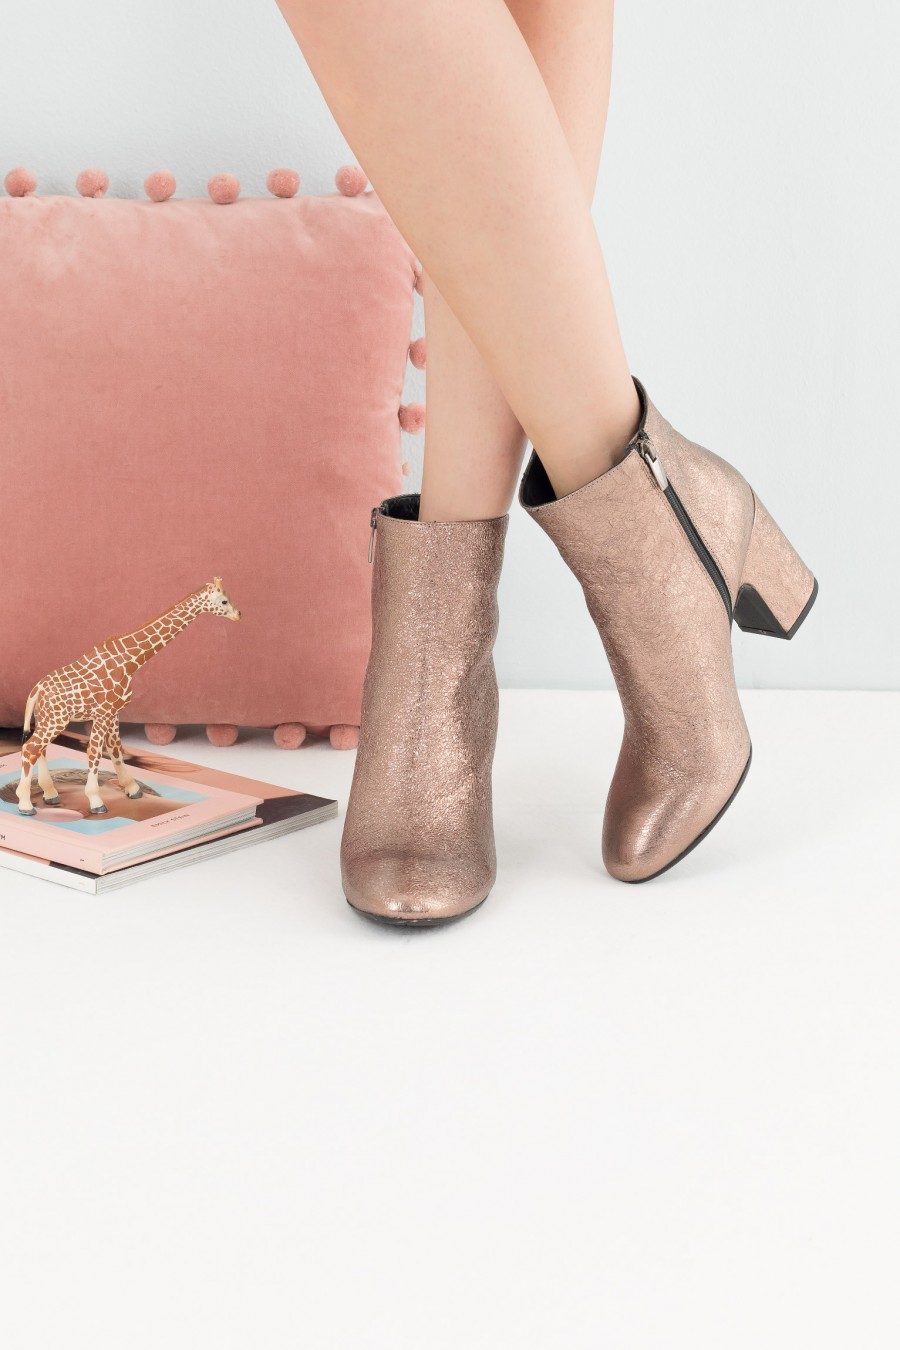 Metallic pink leather ankle boots